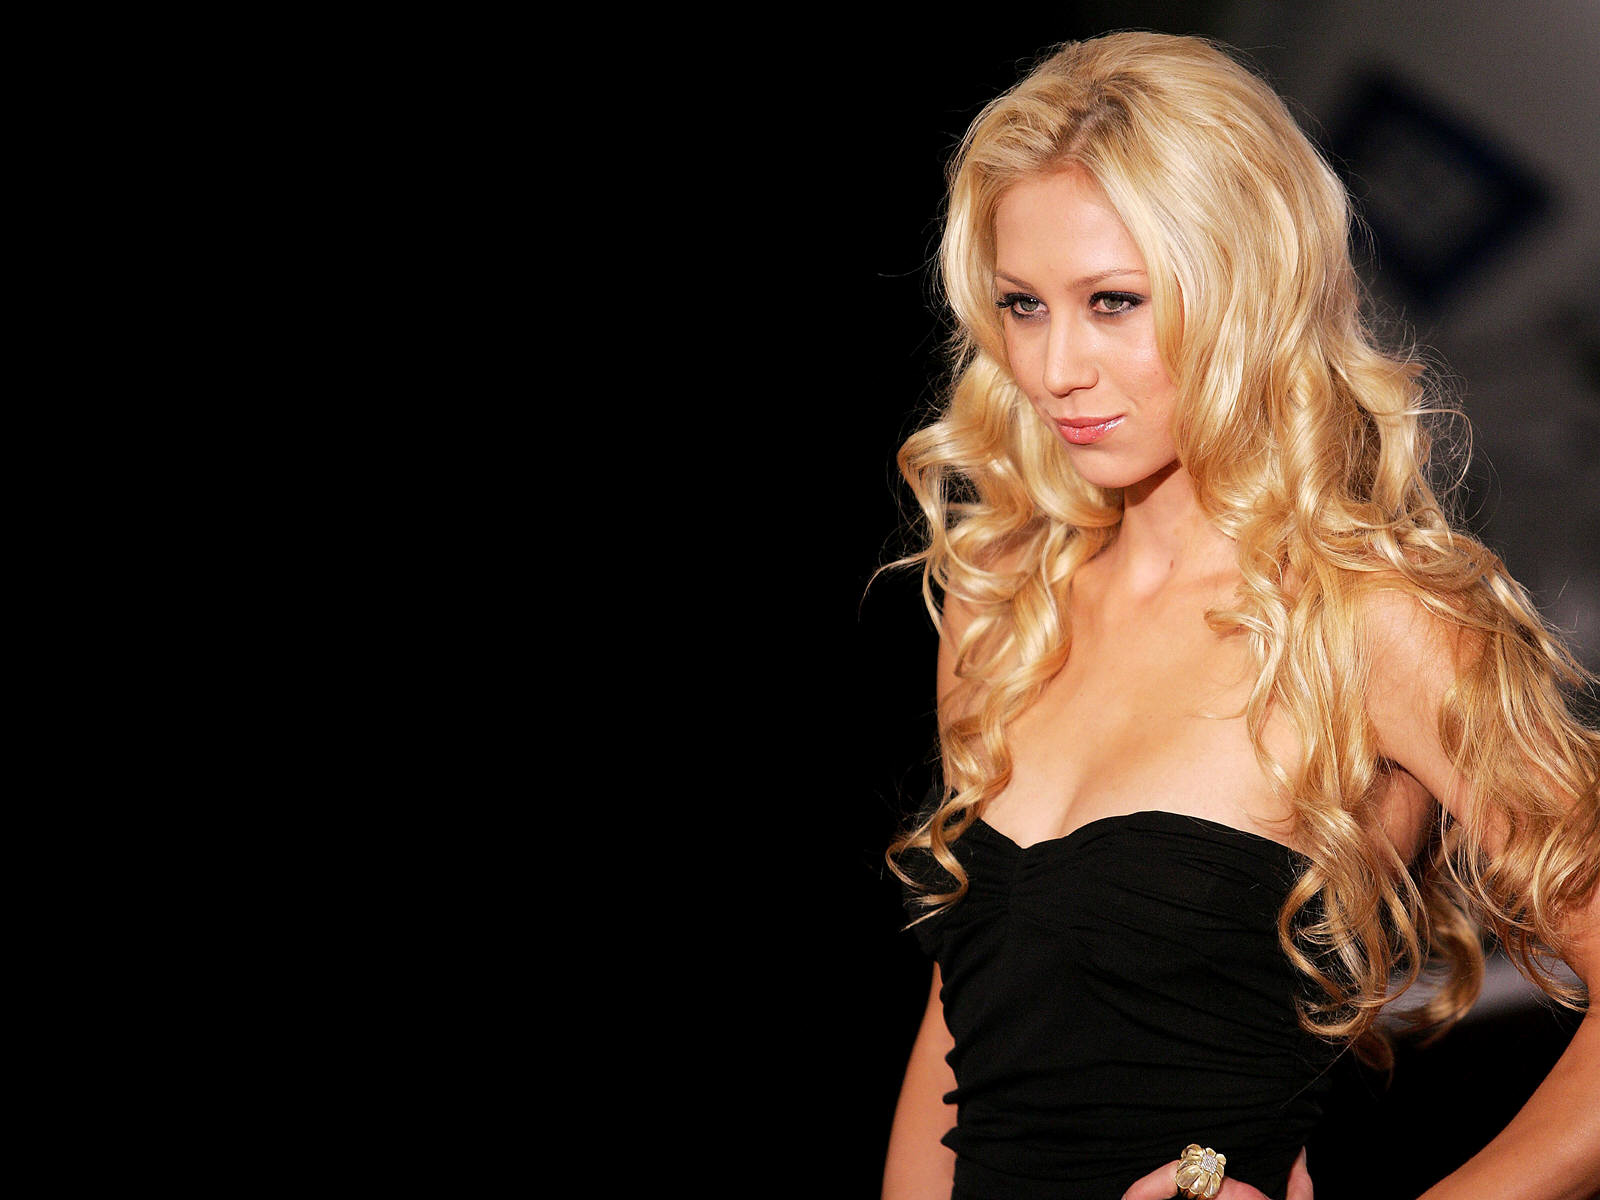 Anna Kournikova Wallpaper Download Anna Kournikova Wallpaper .